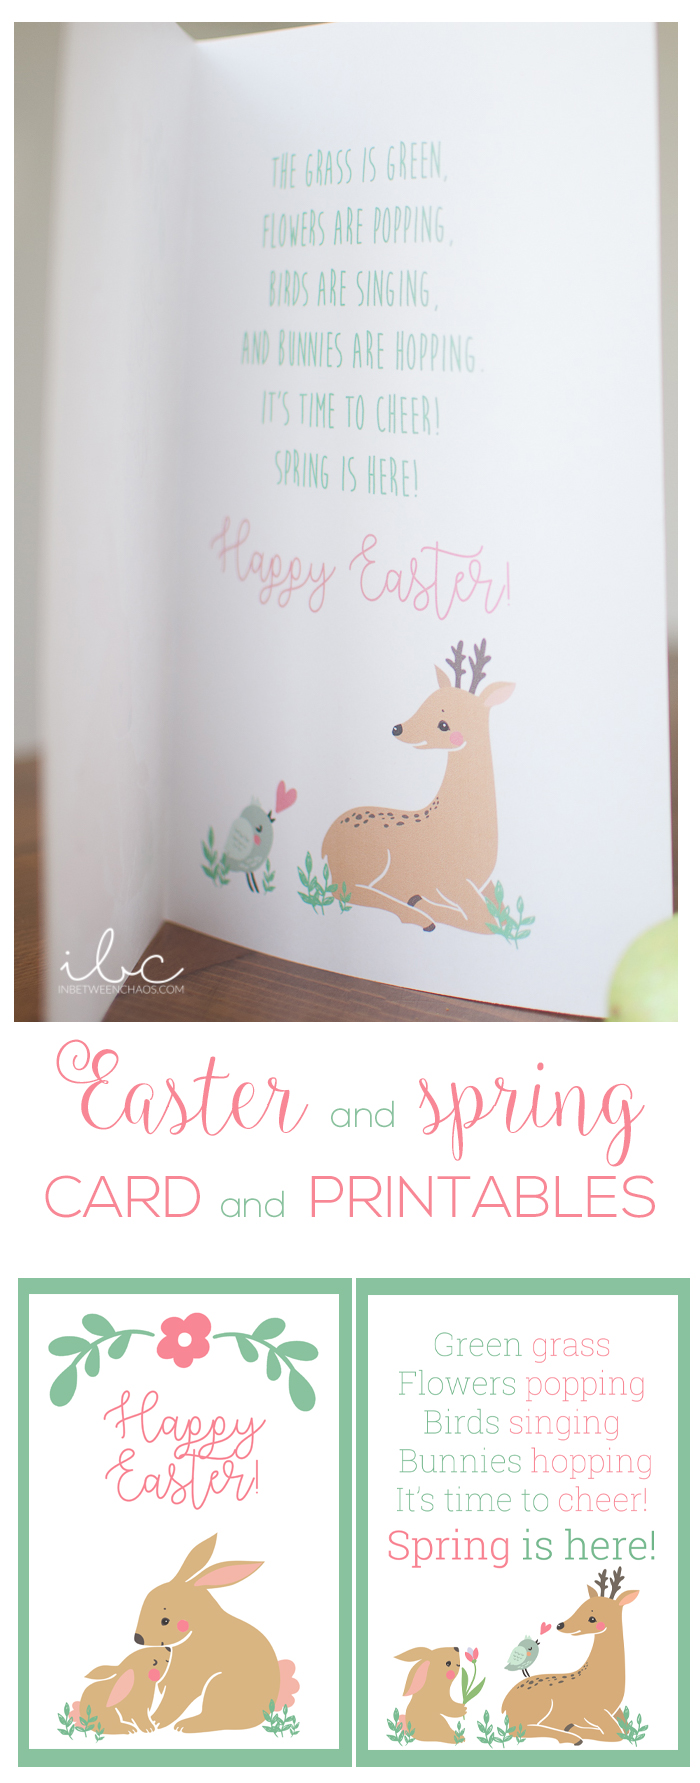 Easter and Spring Card and Printables | inbetweenchaos.com